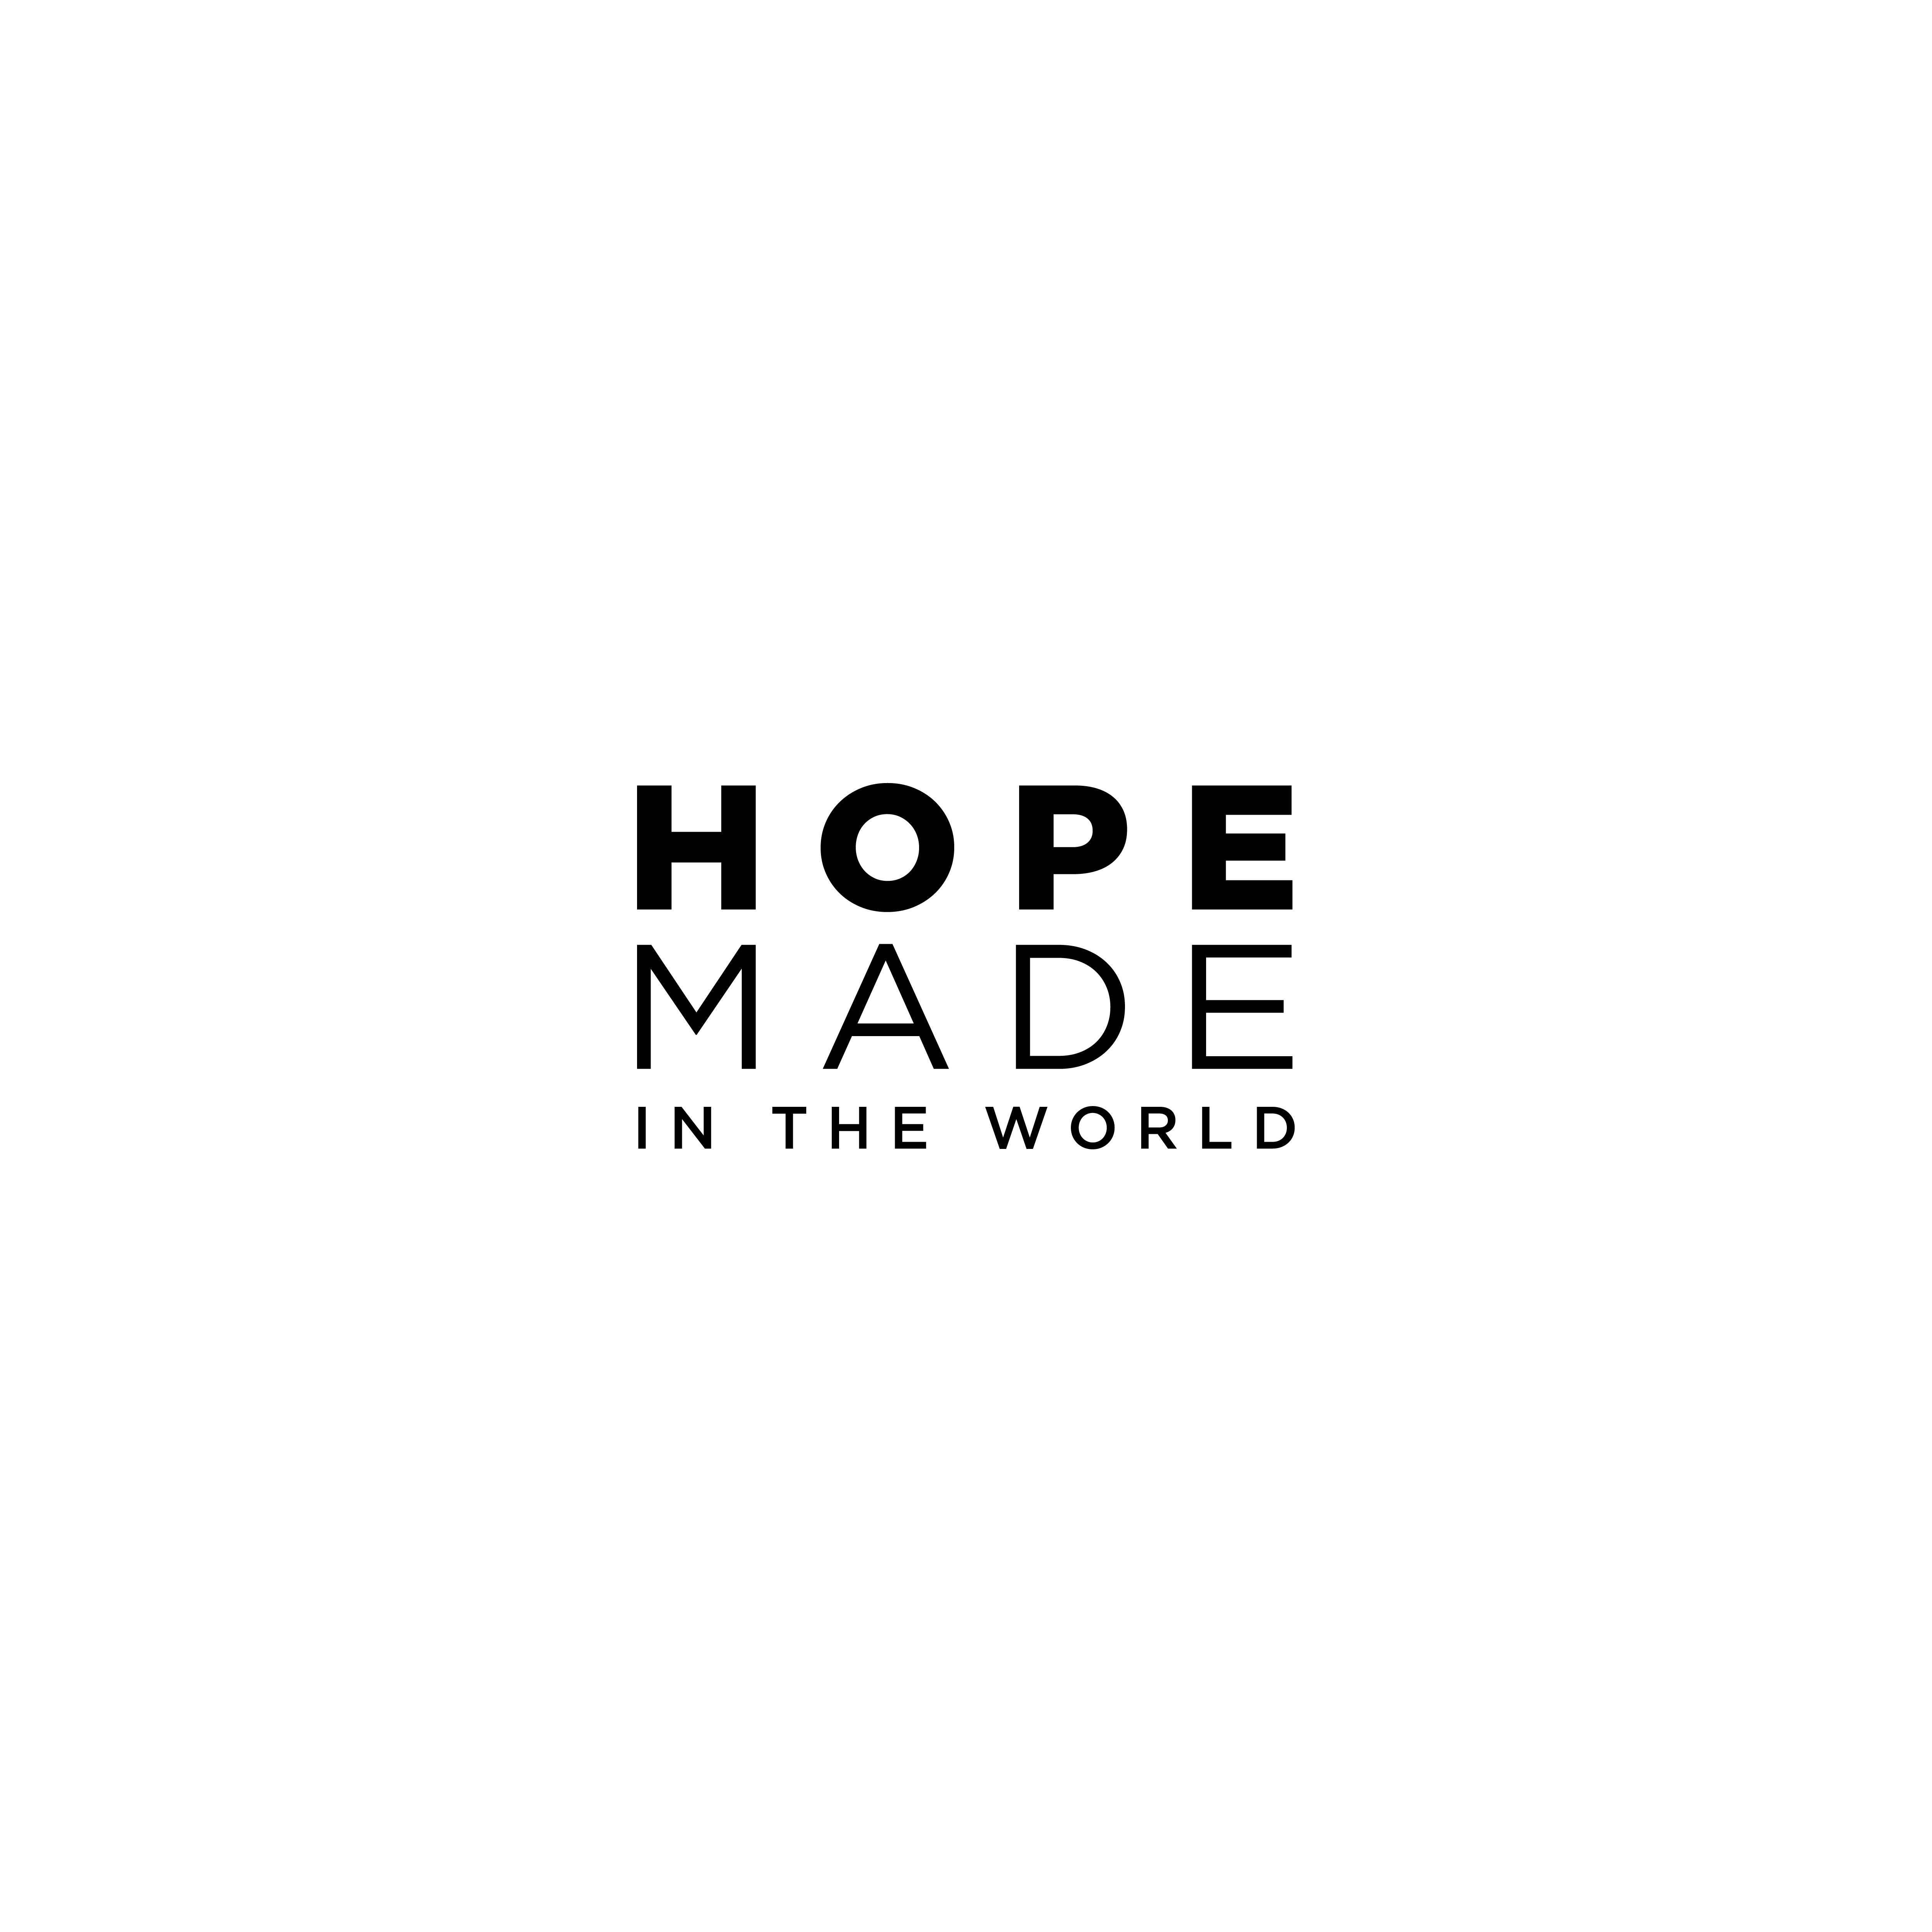 Organic fair trade and sustainable clothing hope made in the world